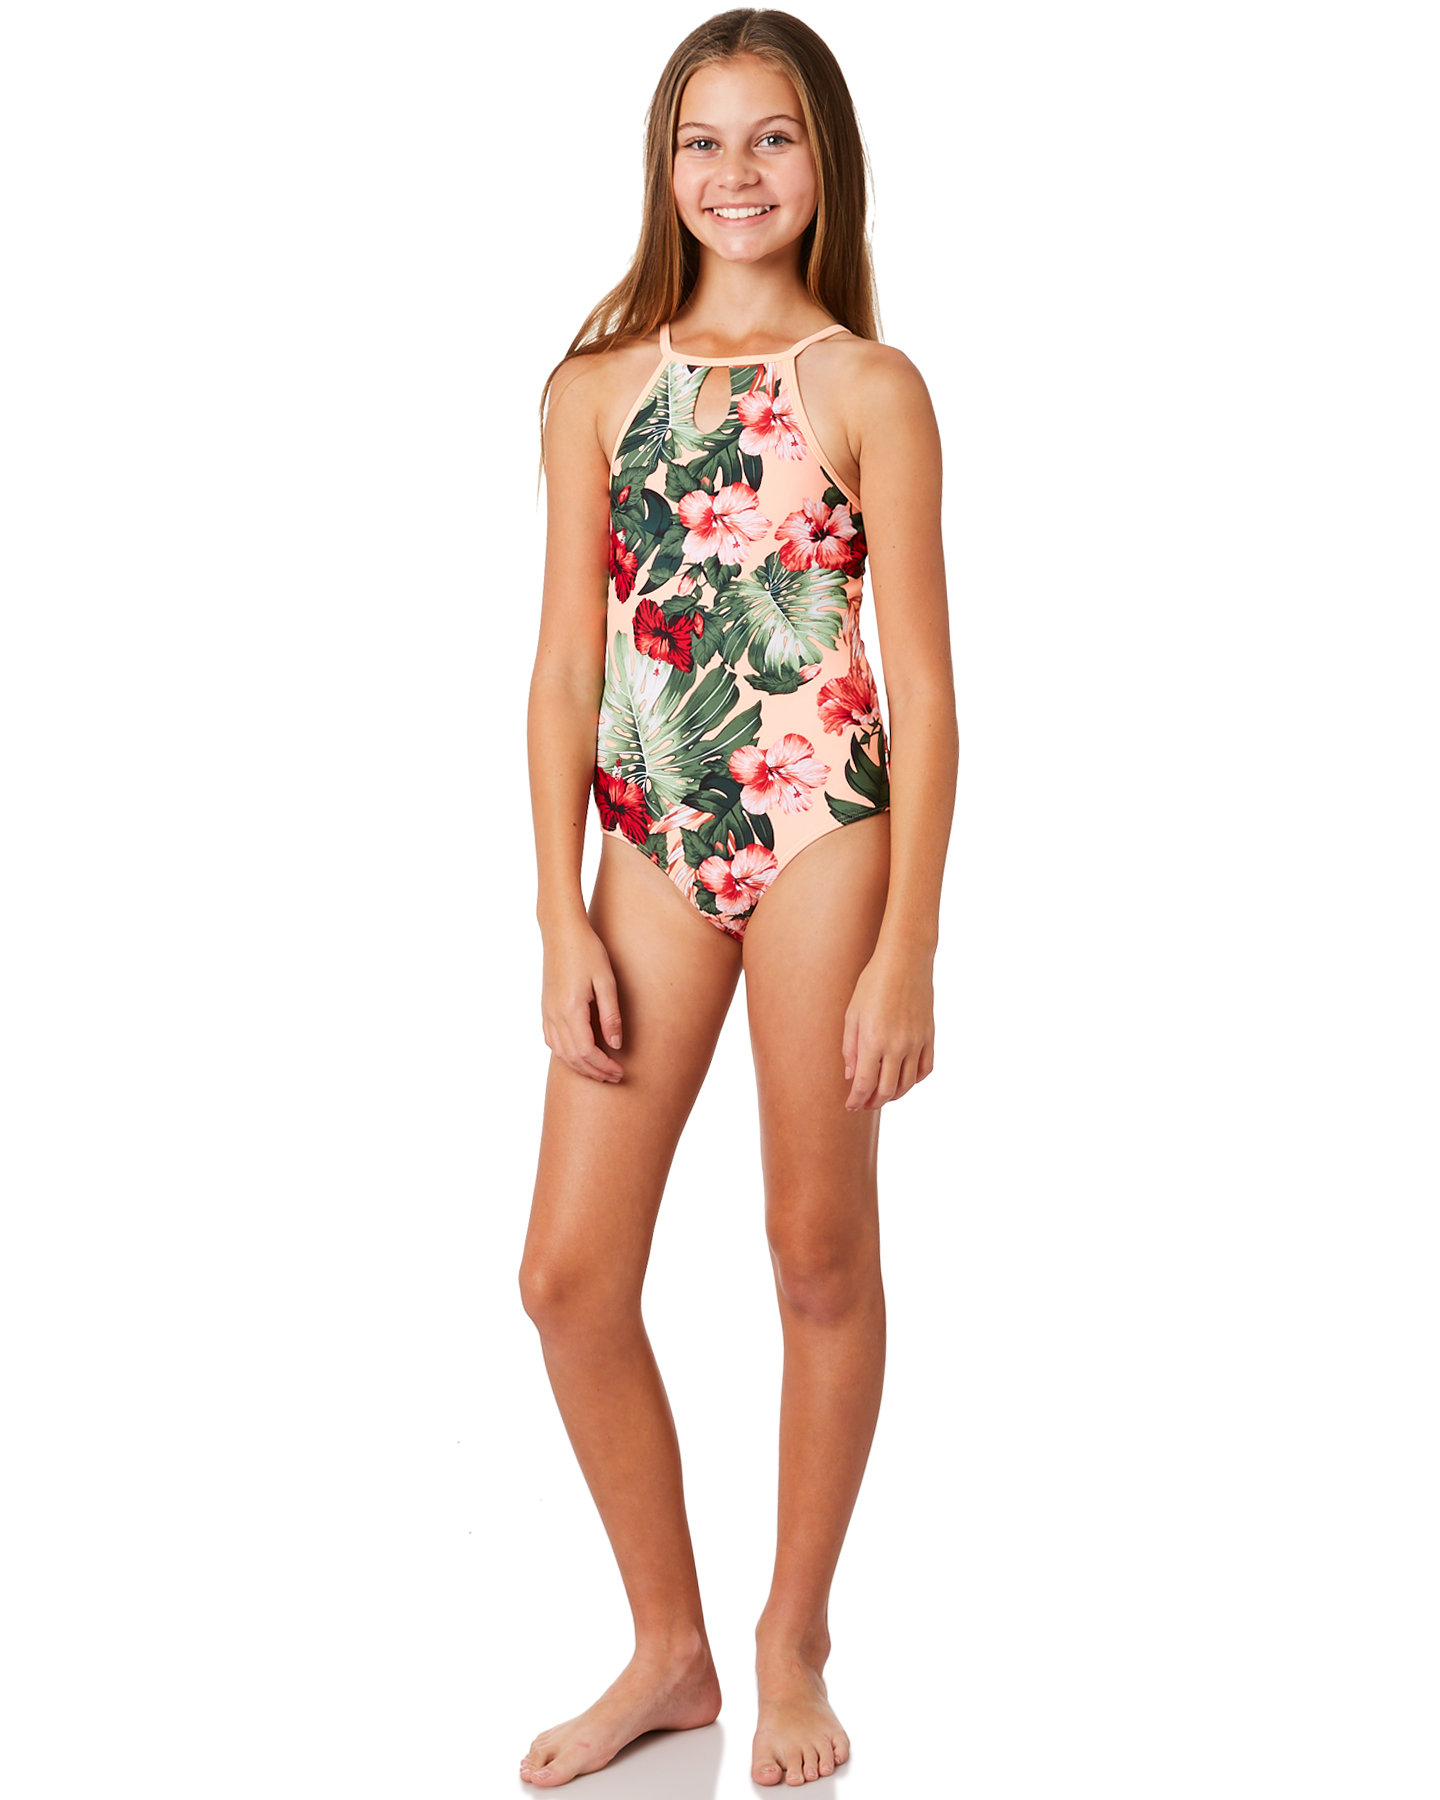 f62d6ed5f6 Details about New Rip Curl Girls Girls Hanalei Beats 1 Piece - Teens Fitted  Blue